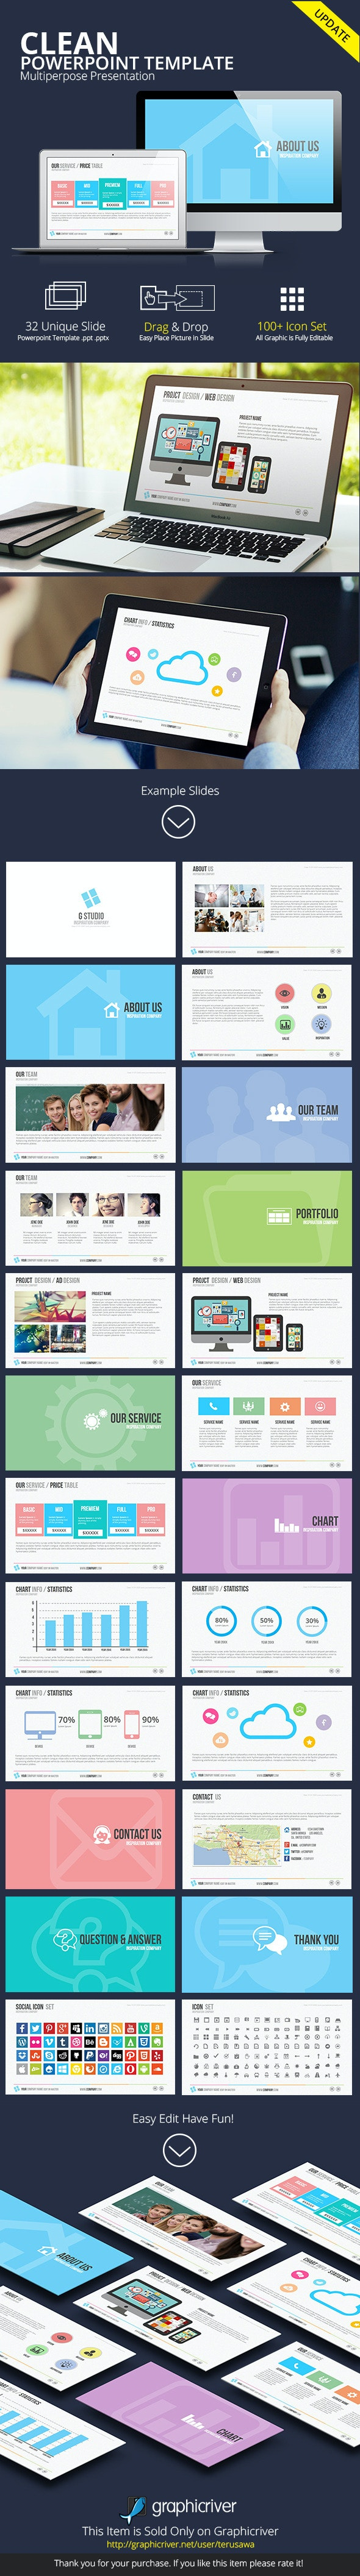 Clean Powerpoint Presentation Template - PowerPoint Templates Presentation Templates